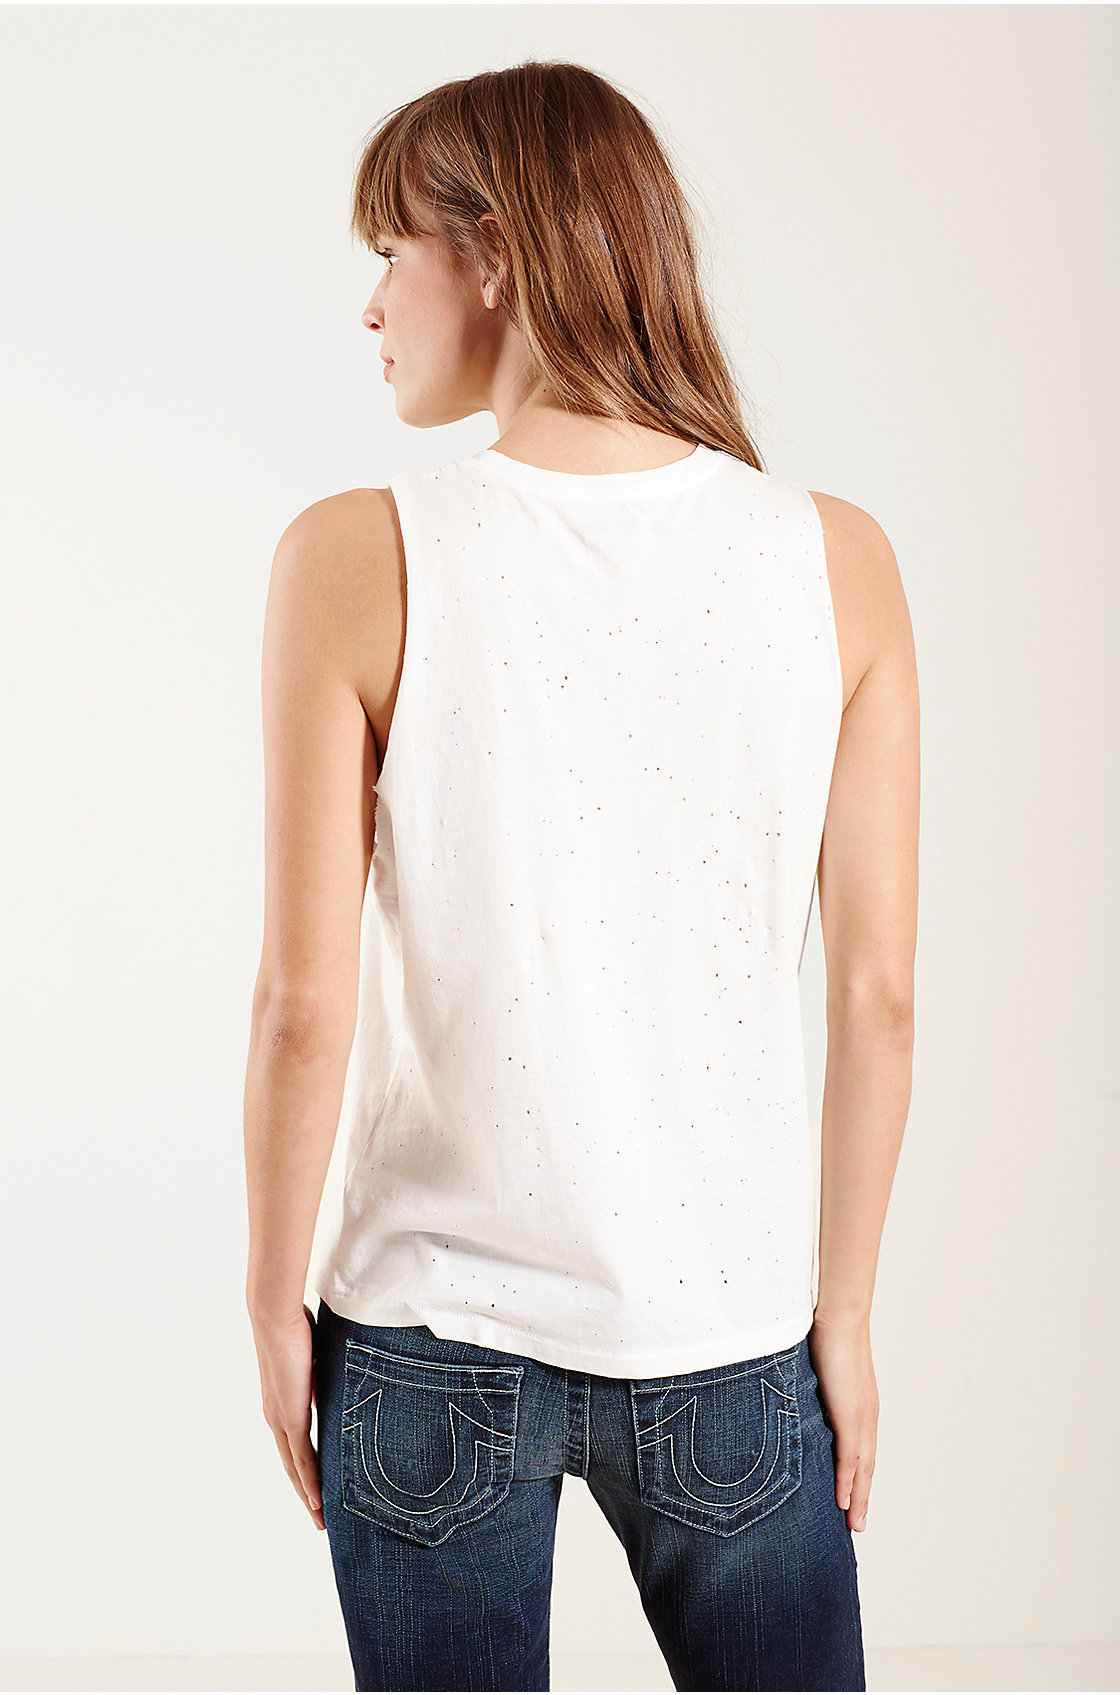 You searched for: women muscle tee! Etsy is the home to thousands of handmade, vintage, and one-of-a-kind products and gifts related to your search. No matter what you're looking for or where you are in the world, our global marketplace of sellers can help you find unique and affordable options. Let's get started!